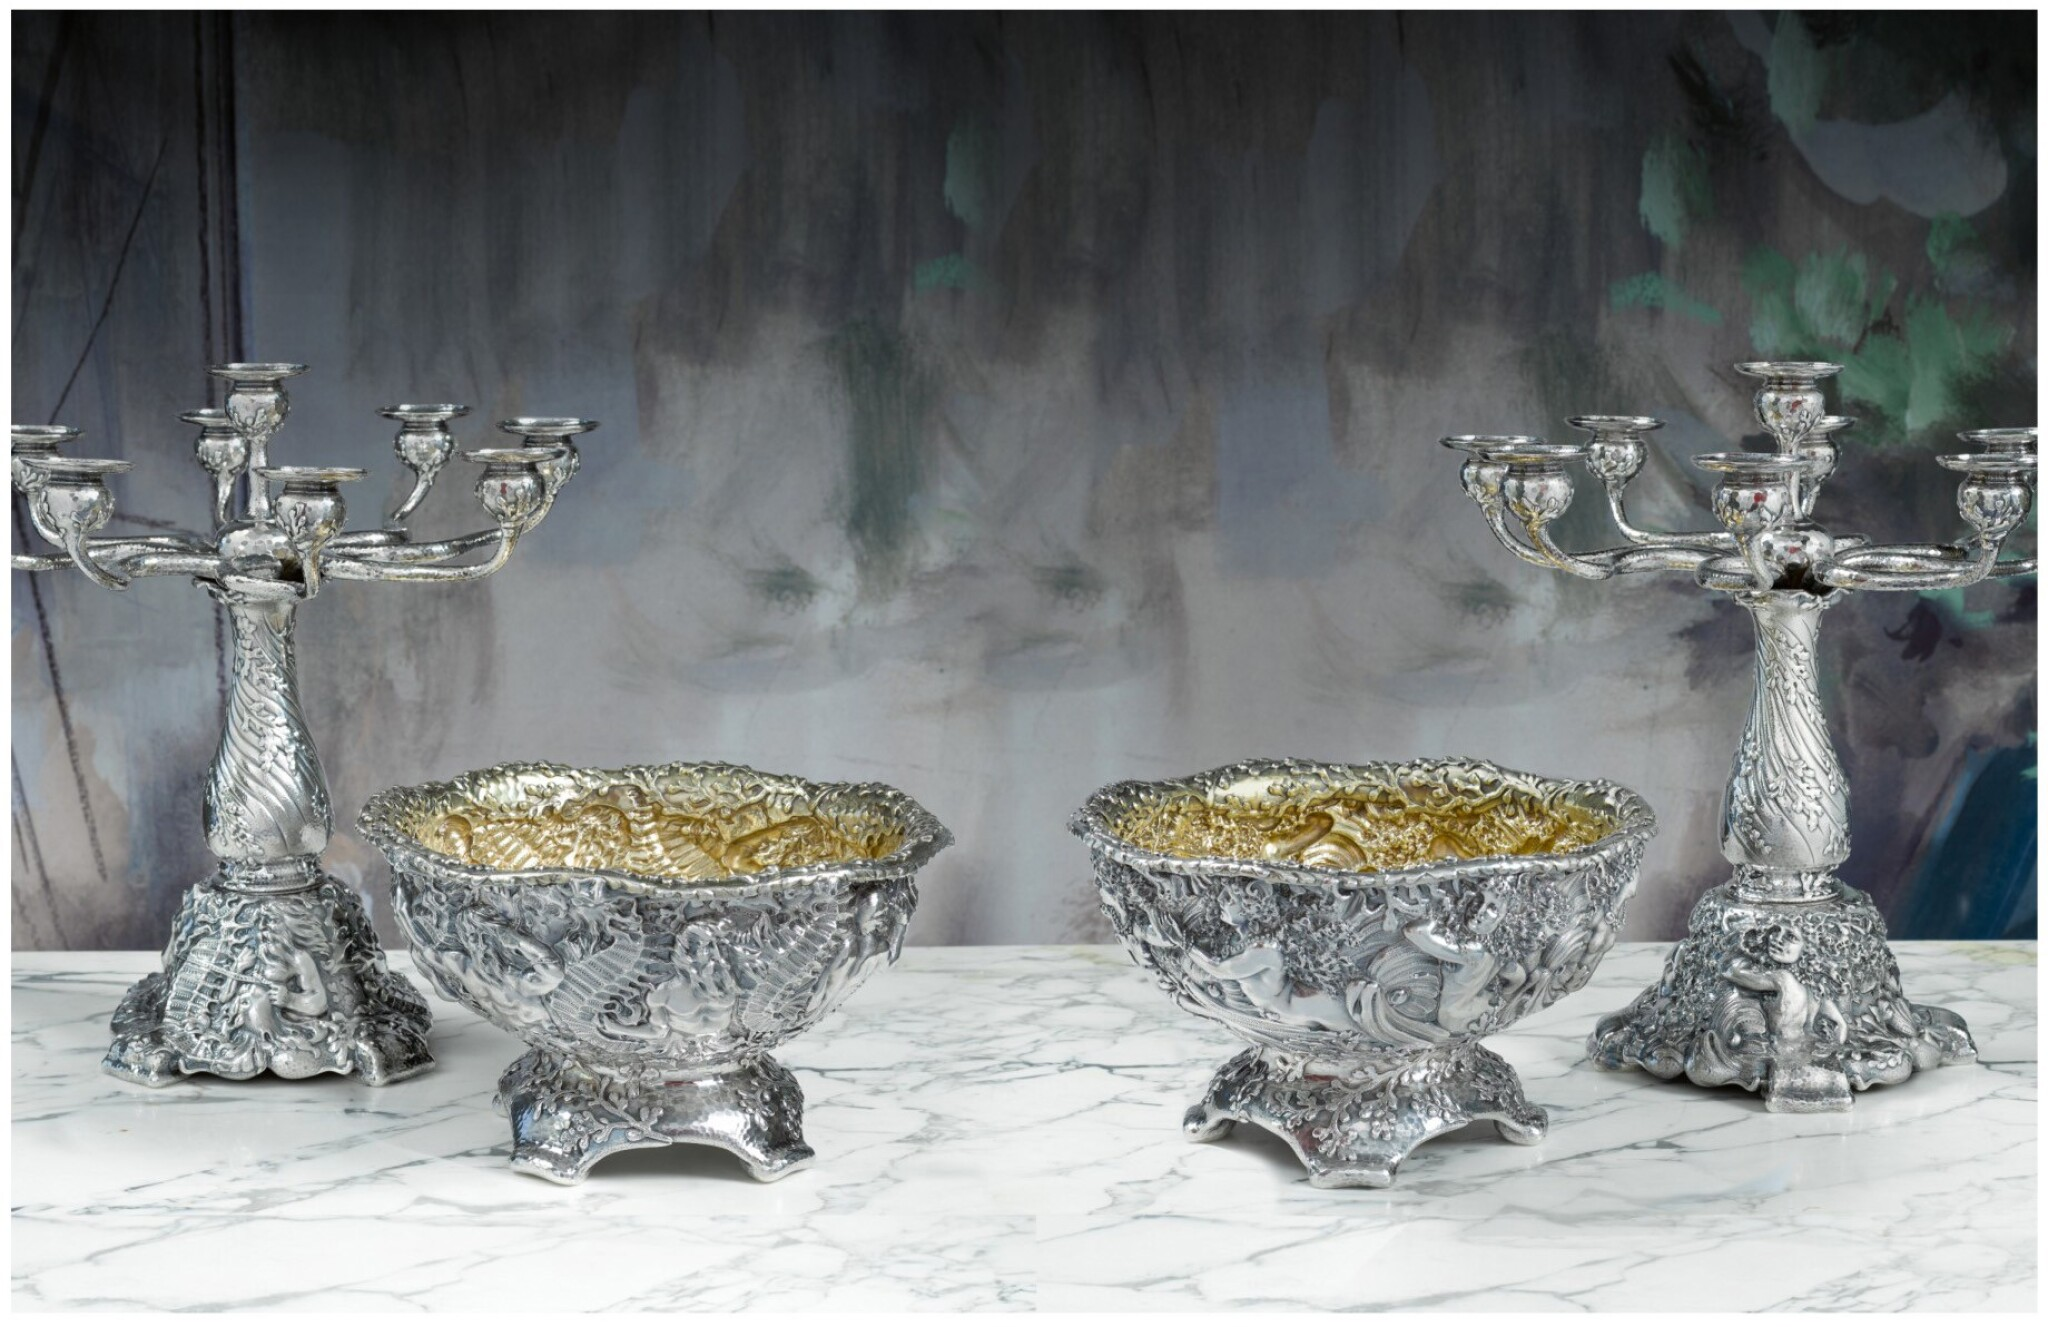 AN AMERICAN SILVER MARINE THEME TABLE GARNITURE: A PAIR OF NINE-LIGHT CANDELABRA AND A PAIR OF CENTERPIECE BOWLS, TIFFANY & CO., NEW YORK, THE DESIGN ATTRIBUTED TO CHARLES OSBORNE, CIRCA 1883